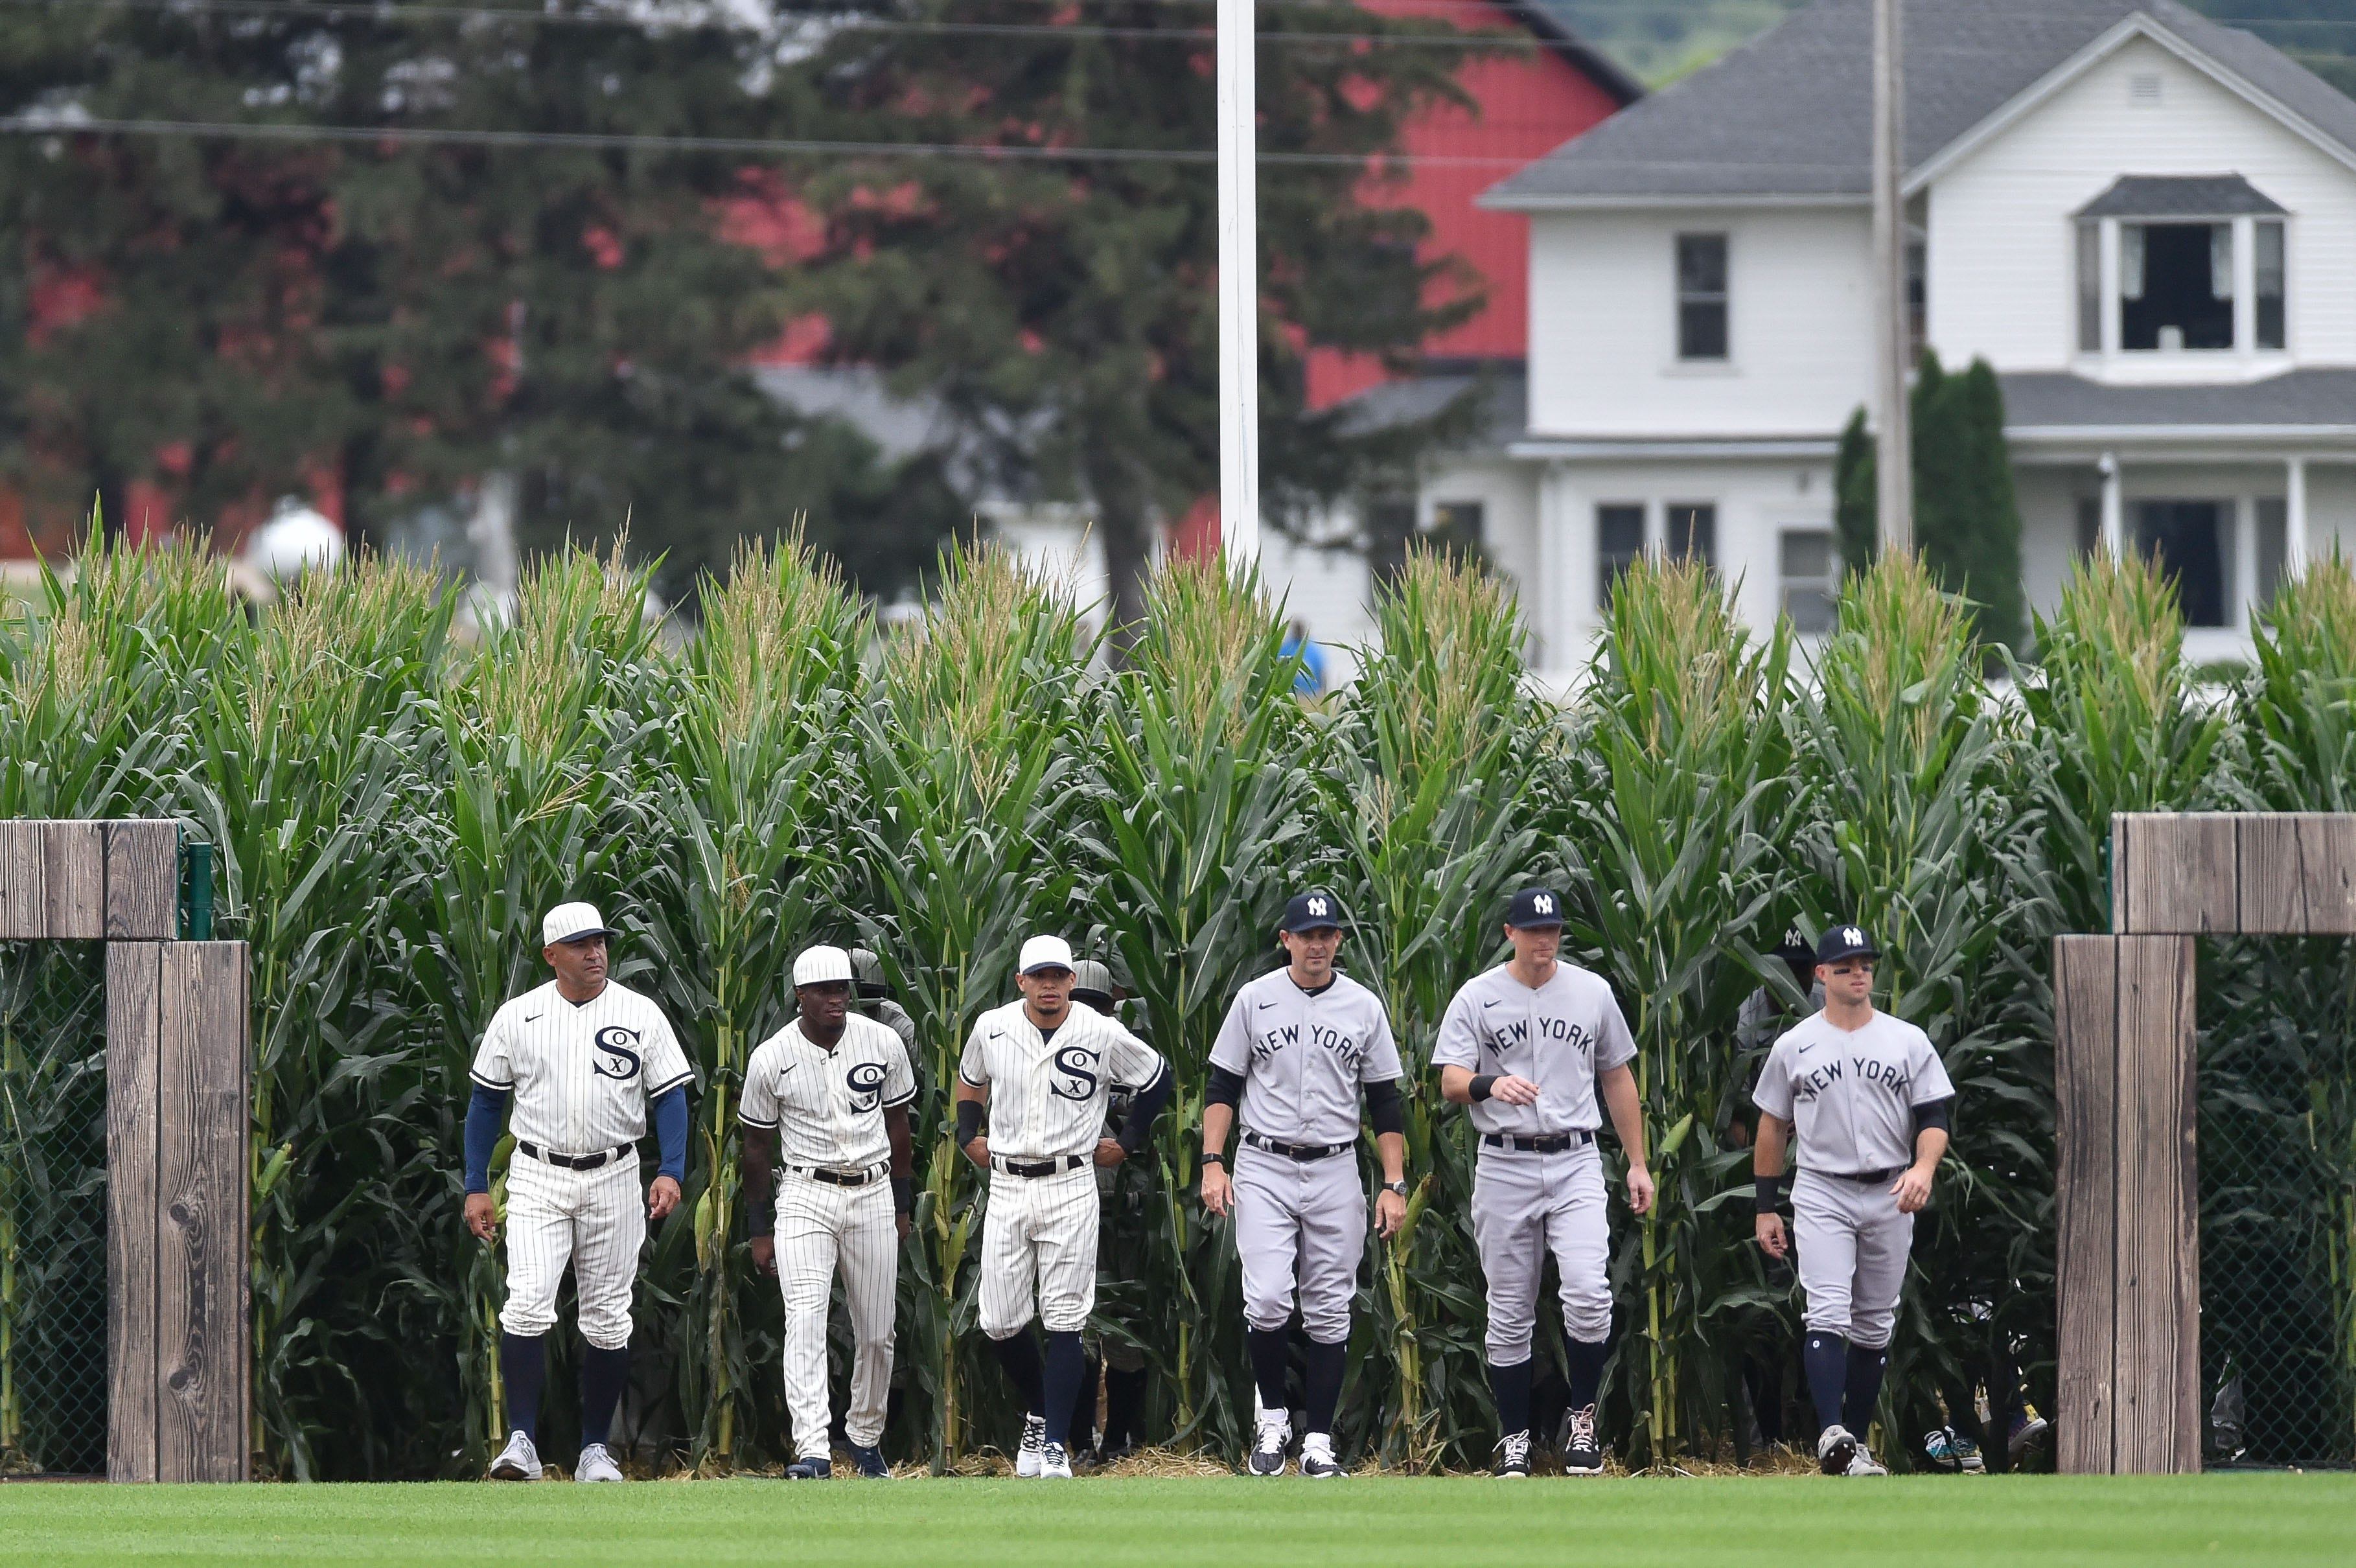 Kevin Costner, White Sox and Yankees put on a show at  Field of Dreams  game in Iowa